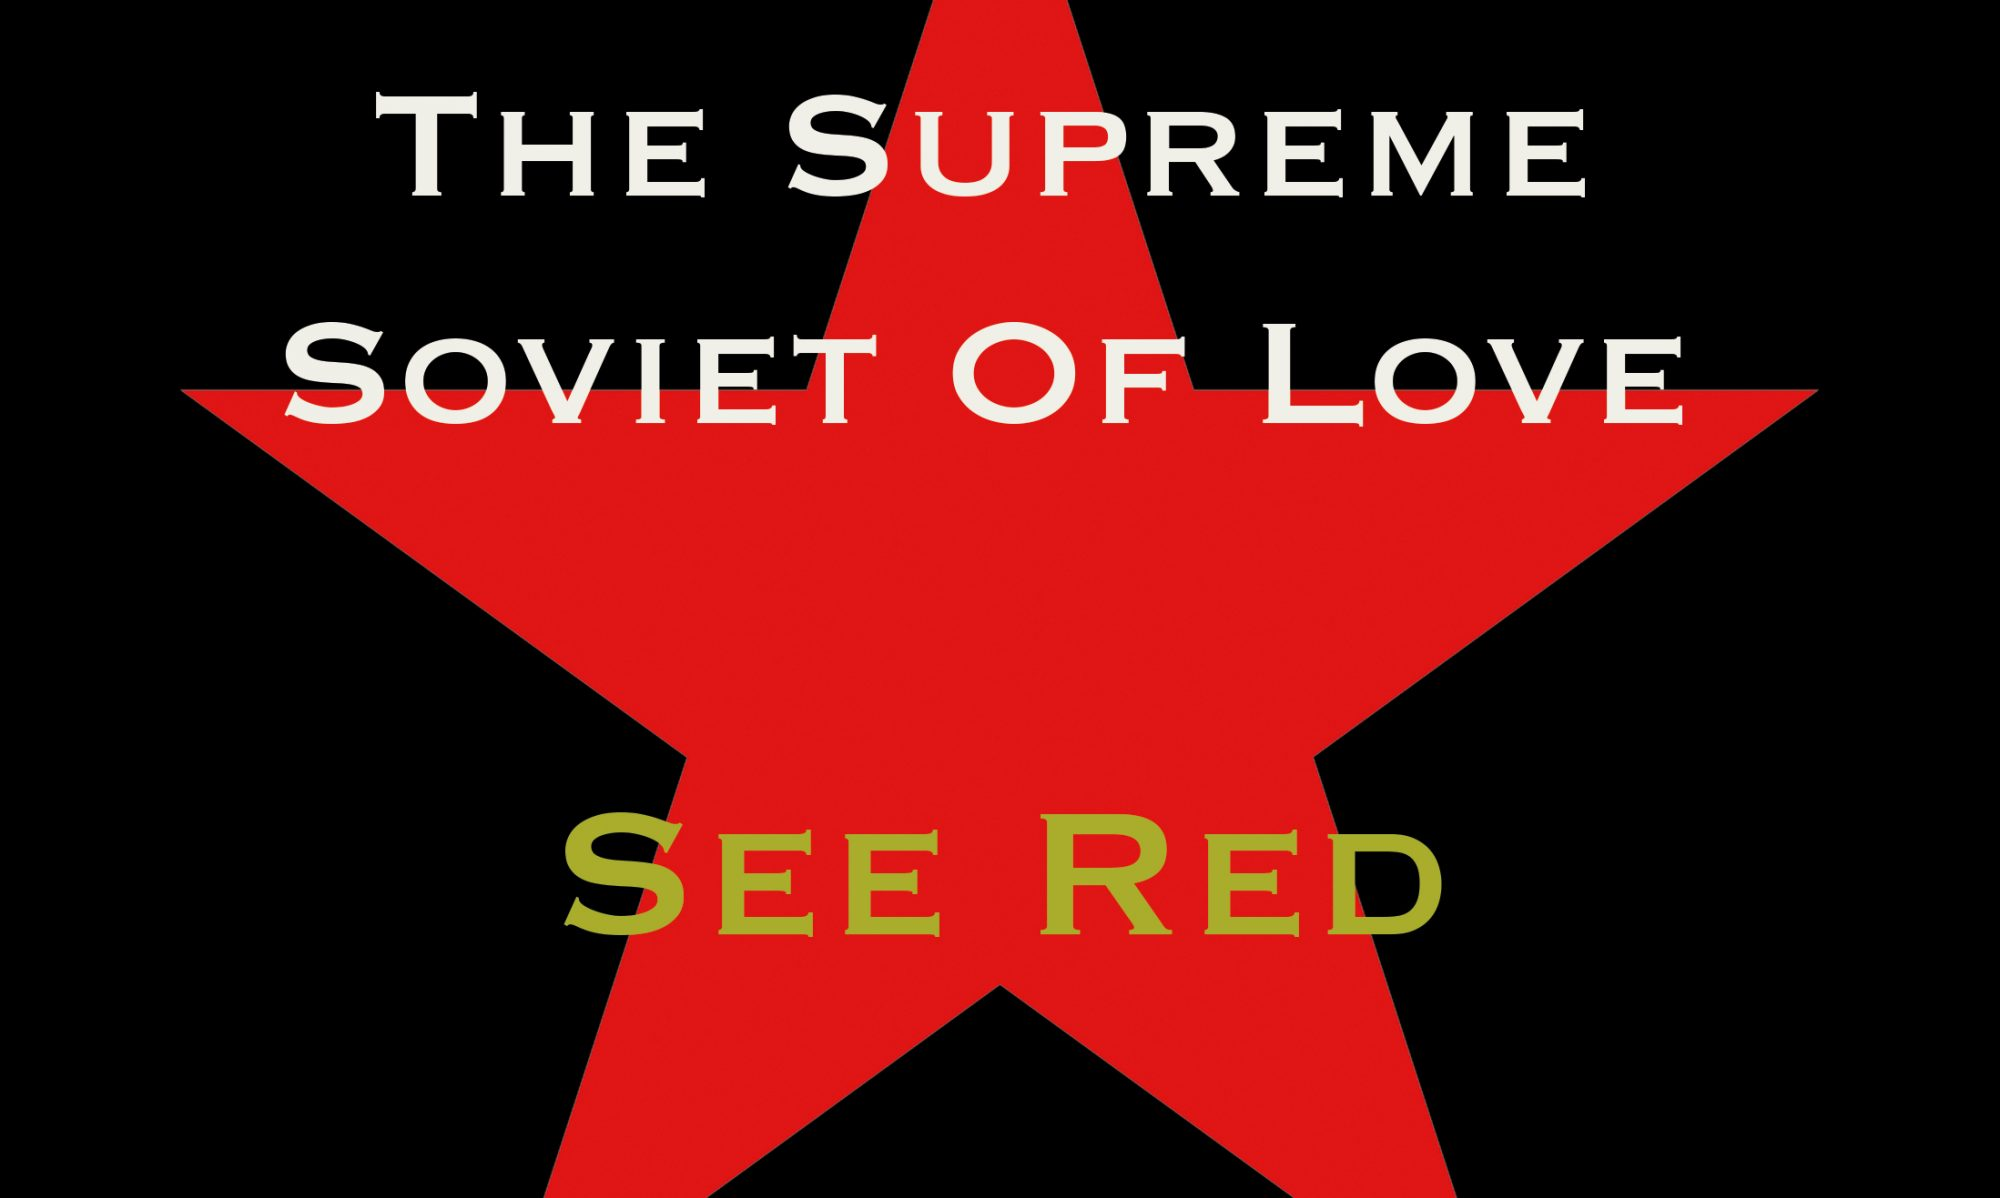 The Supreme Soviet Of Love